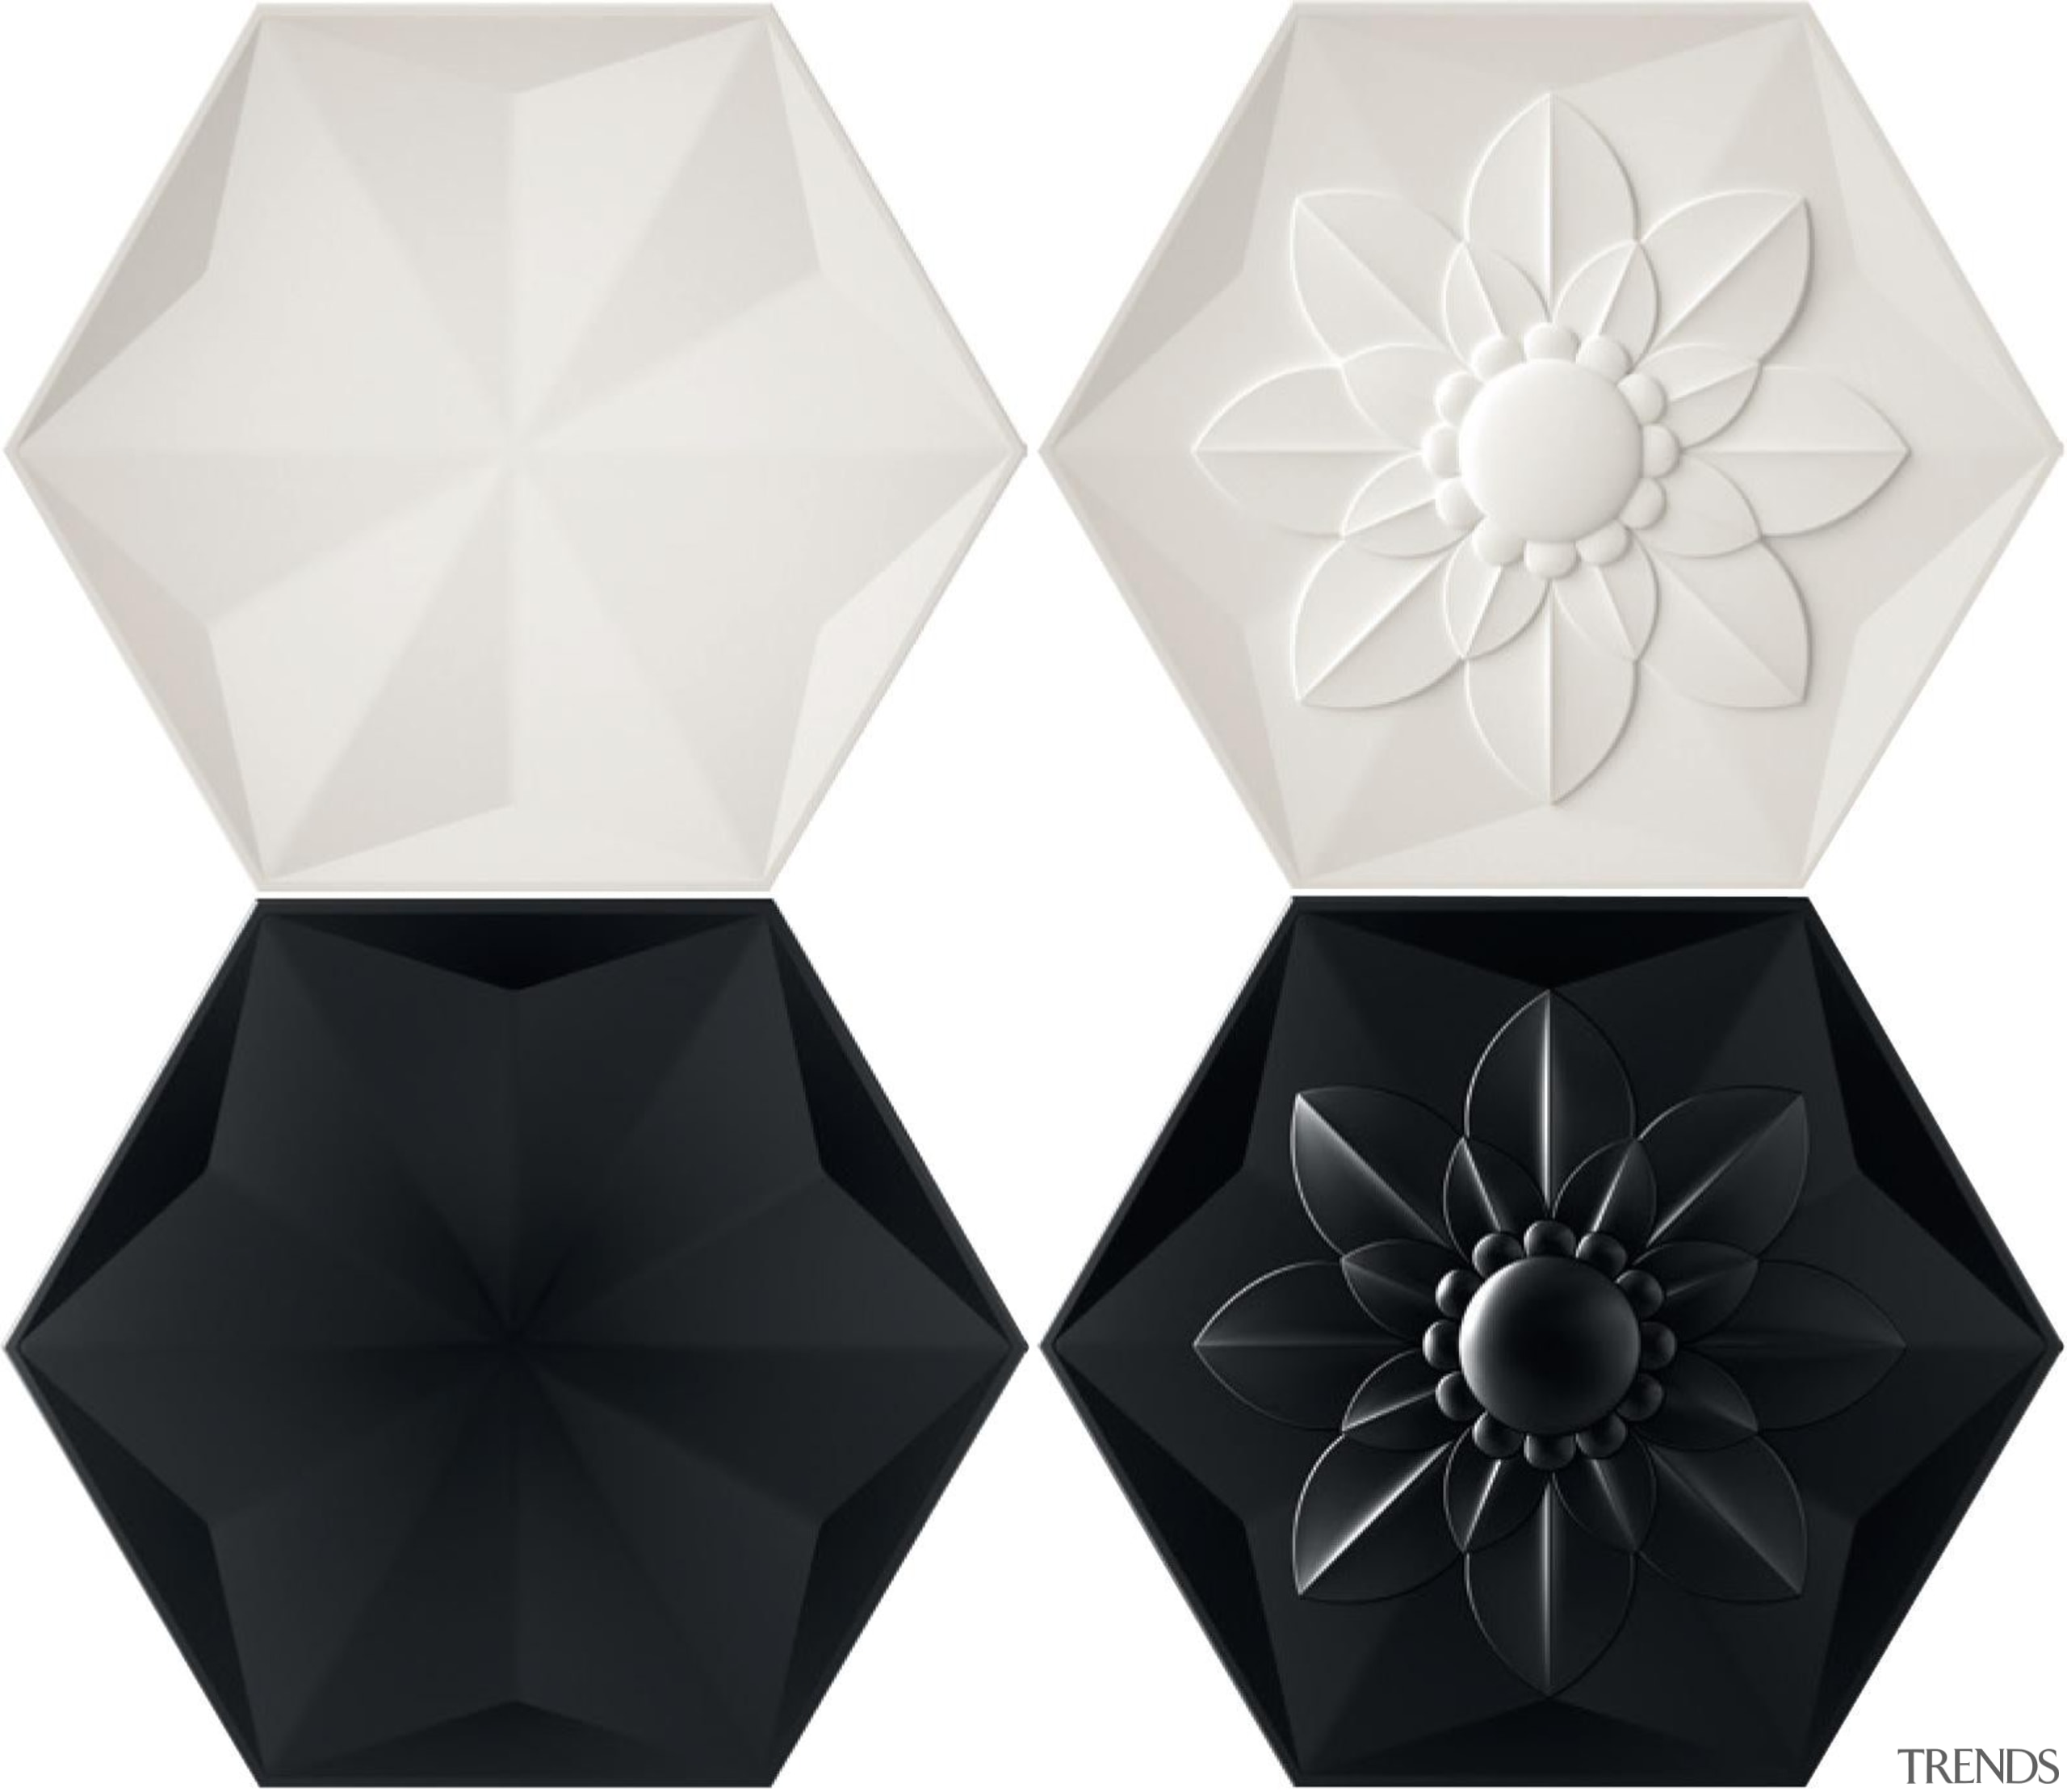 Available in Black or White in Crystal or fashion accessory, white, black